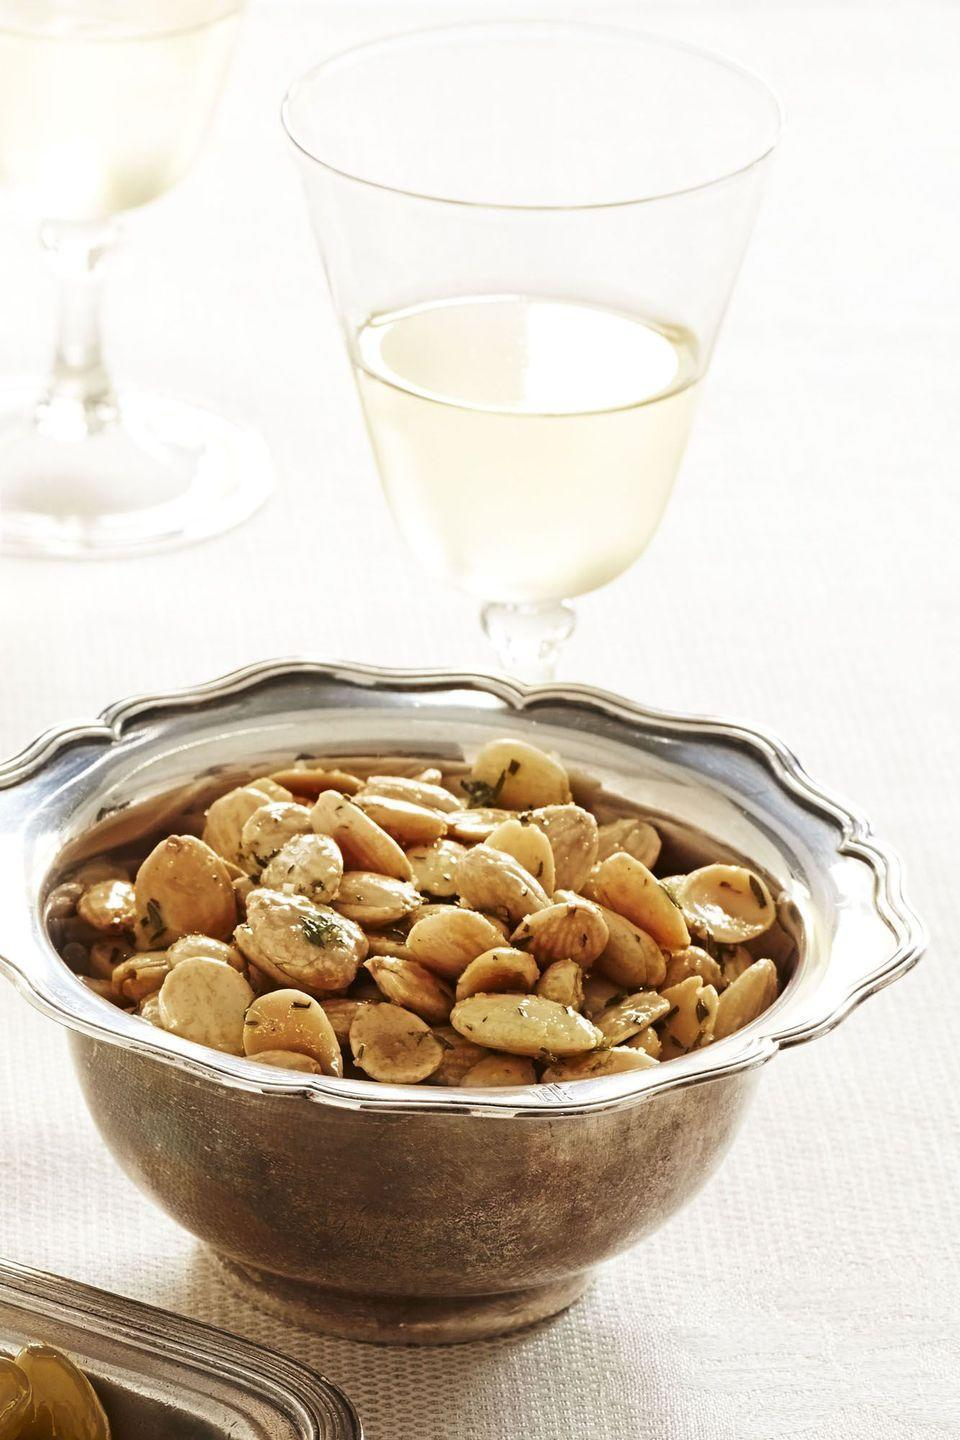 "<p>These salty and herby nuts are the perfect snack to munch on while you wait for your turkey to finish roasting.</p><p><em><a href=""https://www.goodhousekeeping.com/food-recipes/a11589/thyme-roasted-marcona-almonds-recipe-ghk1113/"" rel=""nofollow noopener"" target=""_blank"" data-ylk=""slk:Get the recipe for Thyme-Roasted Marcona Almonds »"" class=""link rapid-noclick-resp"">Get the recipe for Thyme-Roasted Marcona Almonds »</a></em></p><p><strong>RELATED: </strong><a href=""https://www.goodhousekeeping.com/holidays/thanksgiving-ideas/g1379/make-ahead-thanksgiving-appetizers/"" rel=""nofollow noopener"" target=""_blank"" data-ylk=""slk:28 Amazing Make-Ahead Thanksgiving Appetizers"" class=""link rapid-noclick-resp"">28 Amazing Make-Ahead Thanksgiving Appetizers</a></p>"